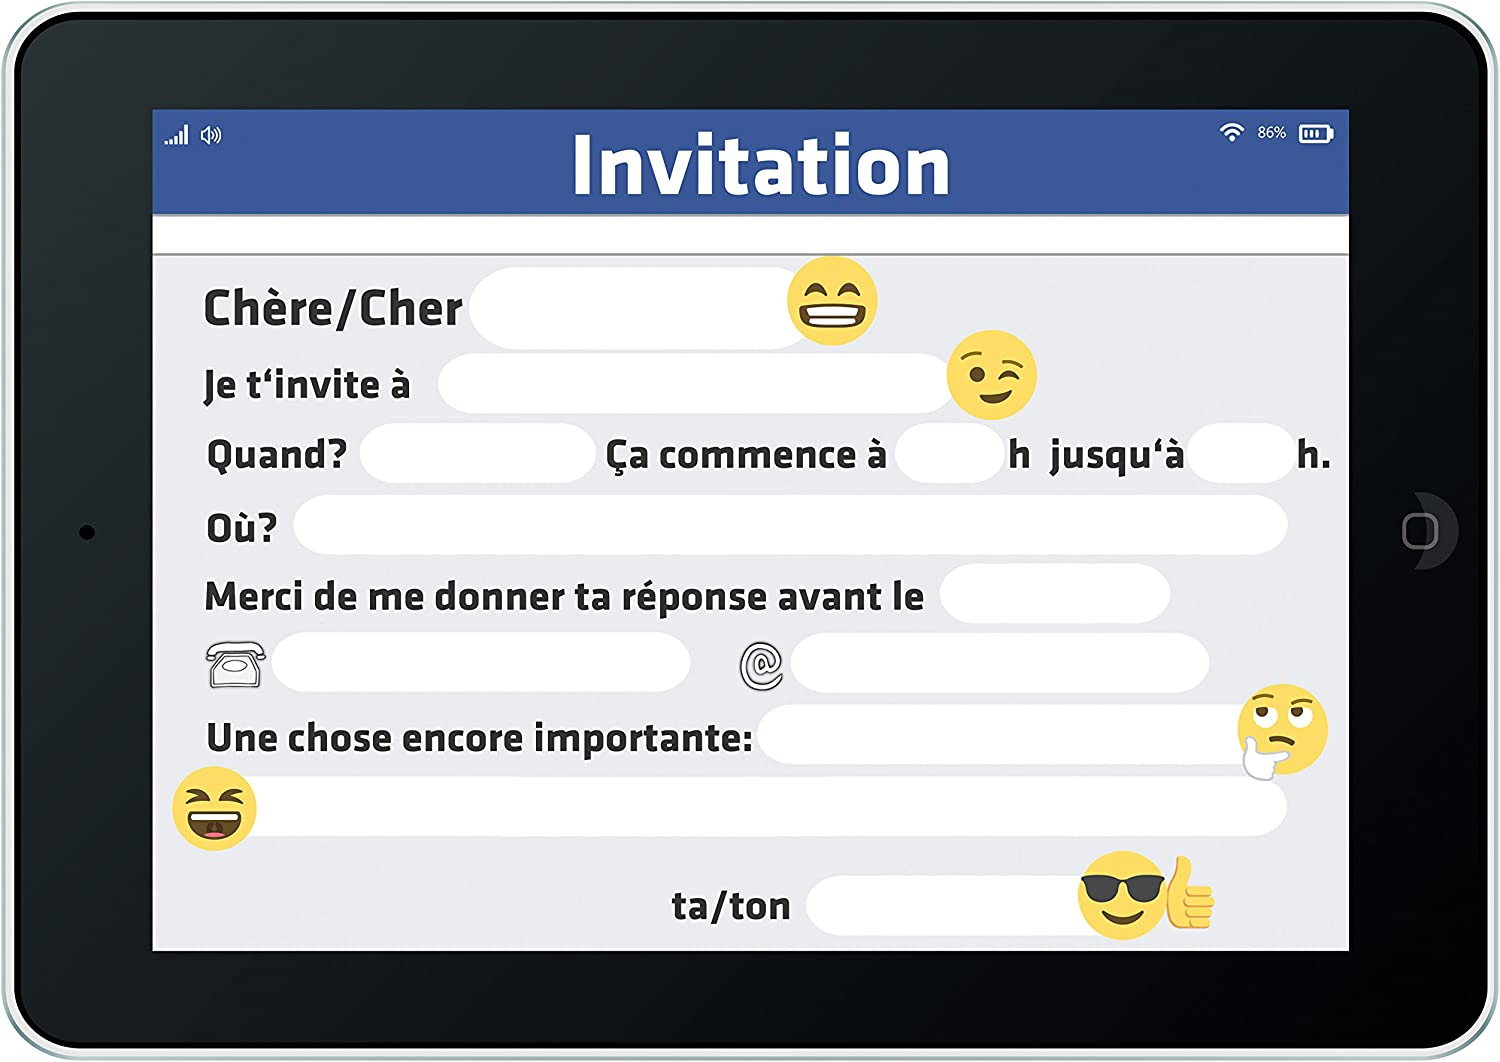 Jeux Et Jouets Invitations 12 Cartes Dinvitation Anniversaire Enfant Smiley Cartes Invitations Filles Garcons Enfants Carte Invitation Fete De Emoji Assortiment De Cartes Anniversaire